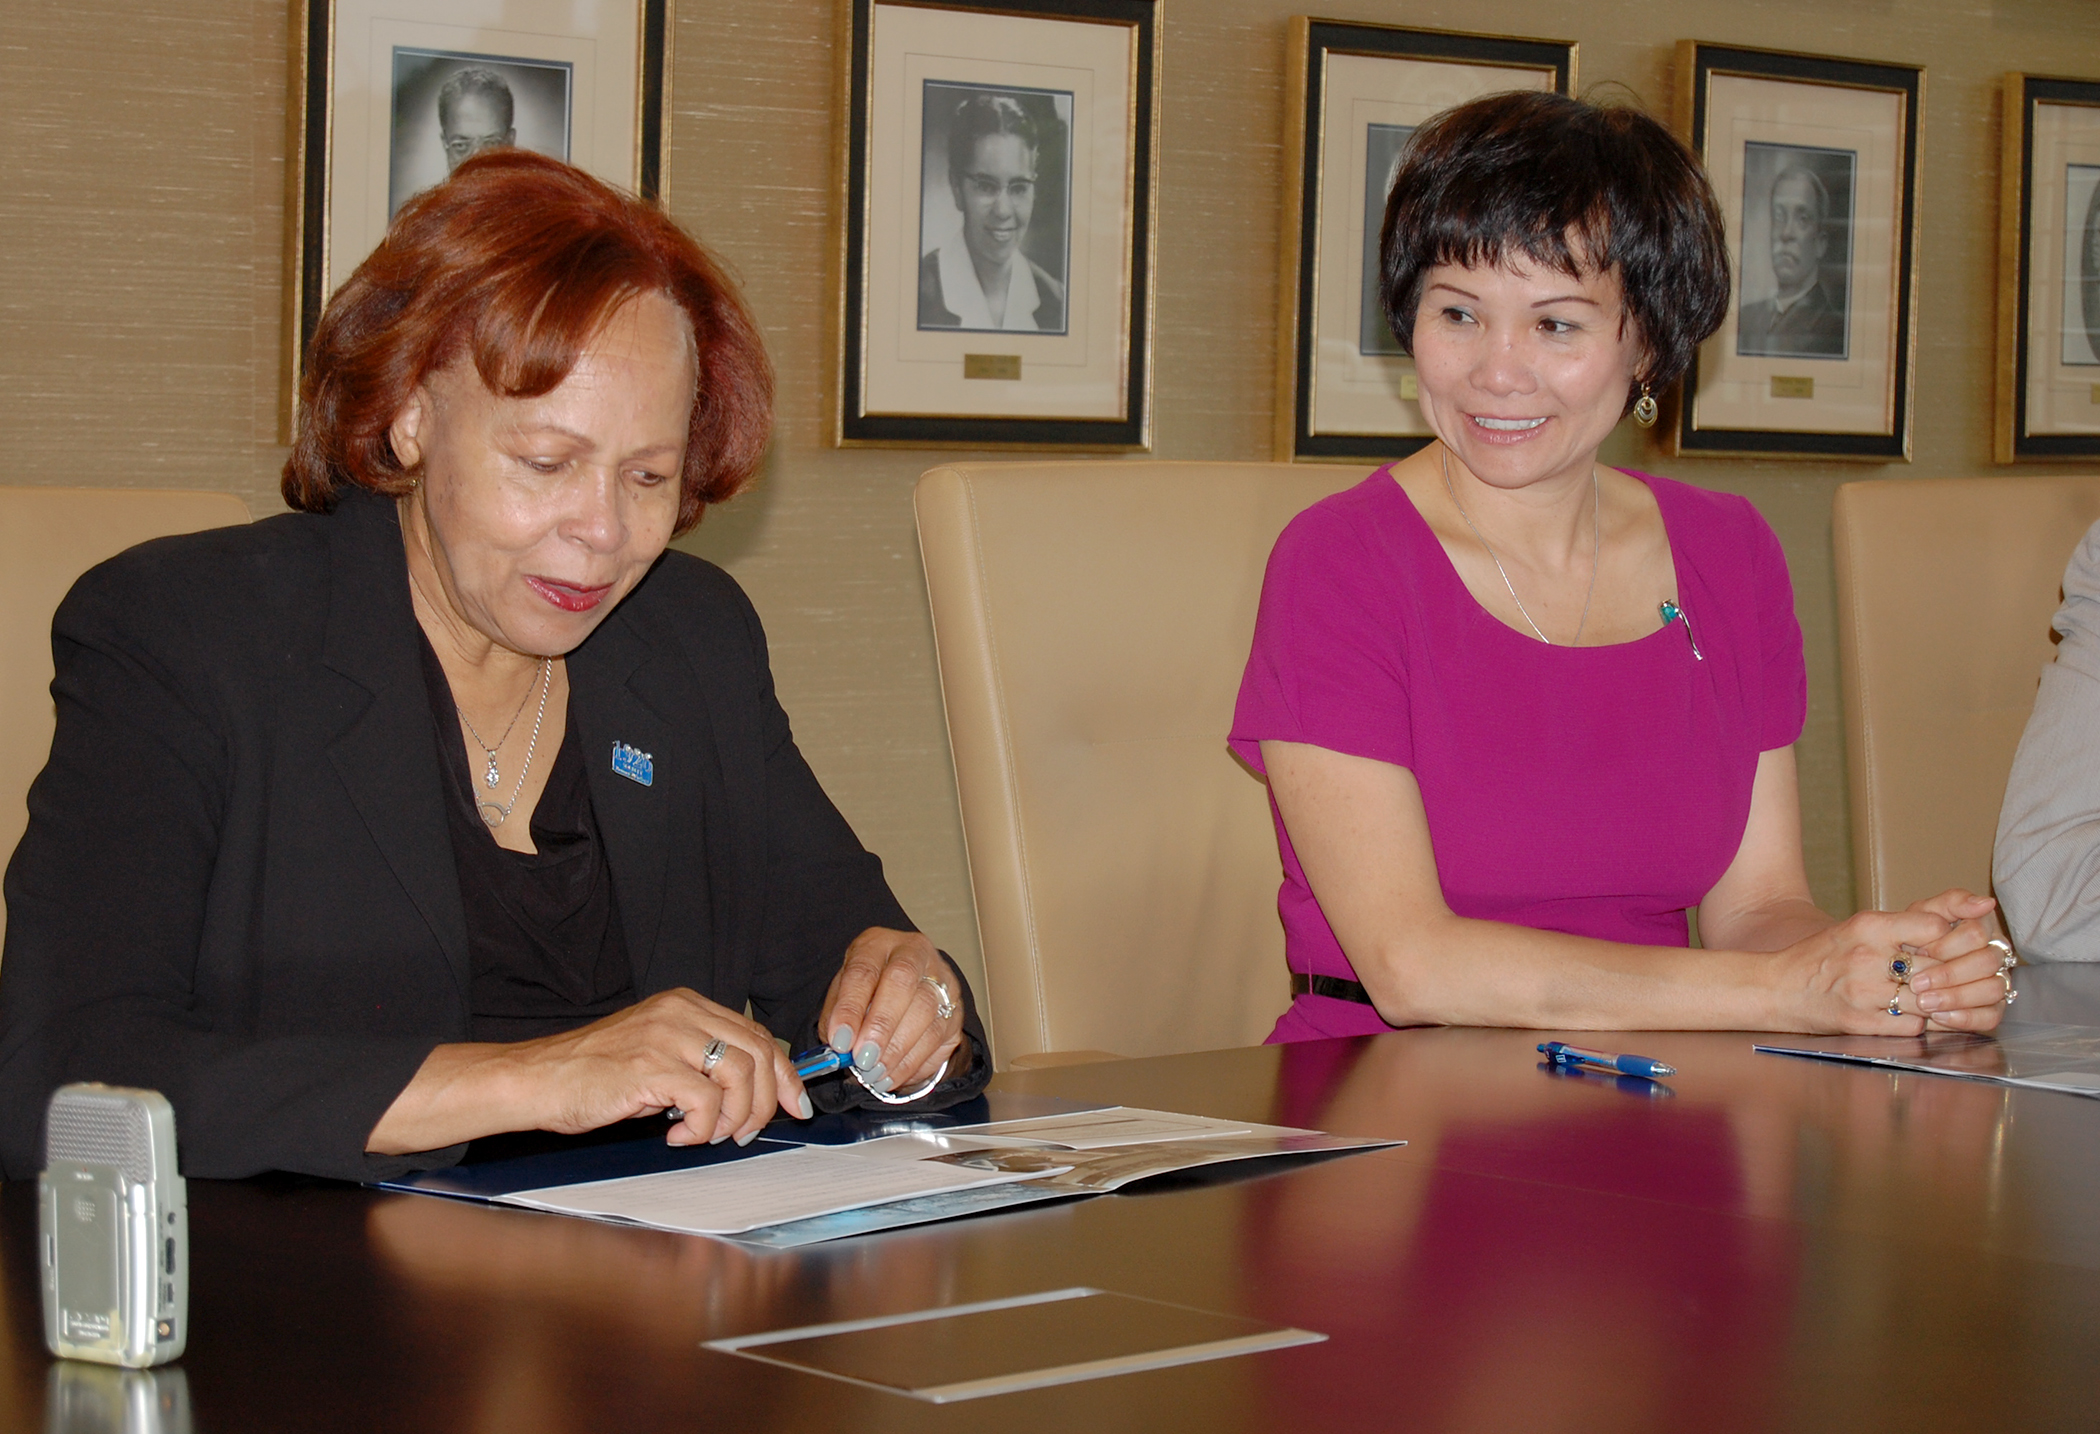 Bennett College Signs Mou With American Language Academy